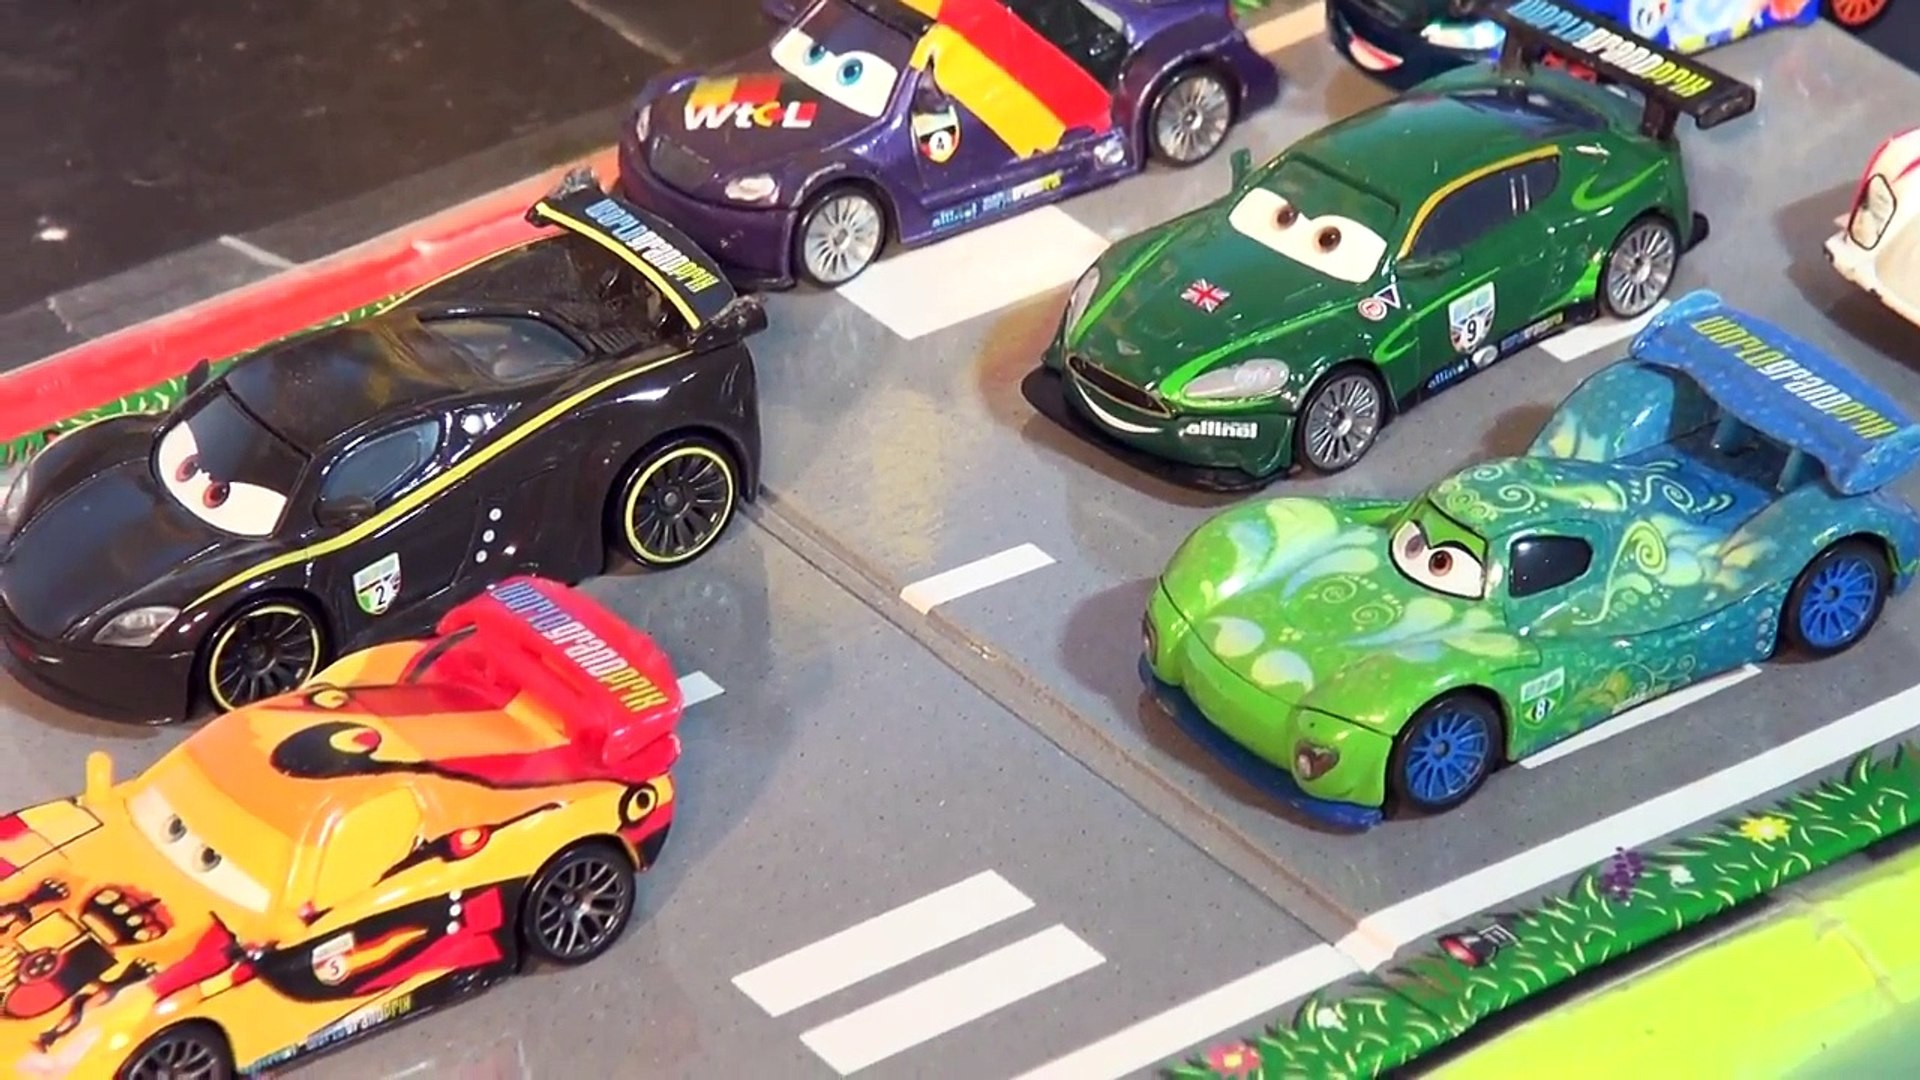 Disney Pixar Cars 2 World Grand Prix Race Screaming Banshee Saves The Day With Lightning Mcqueen Video Dailymotion